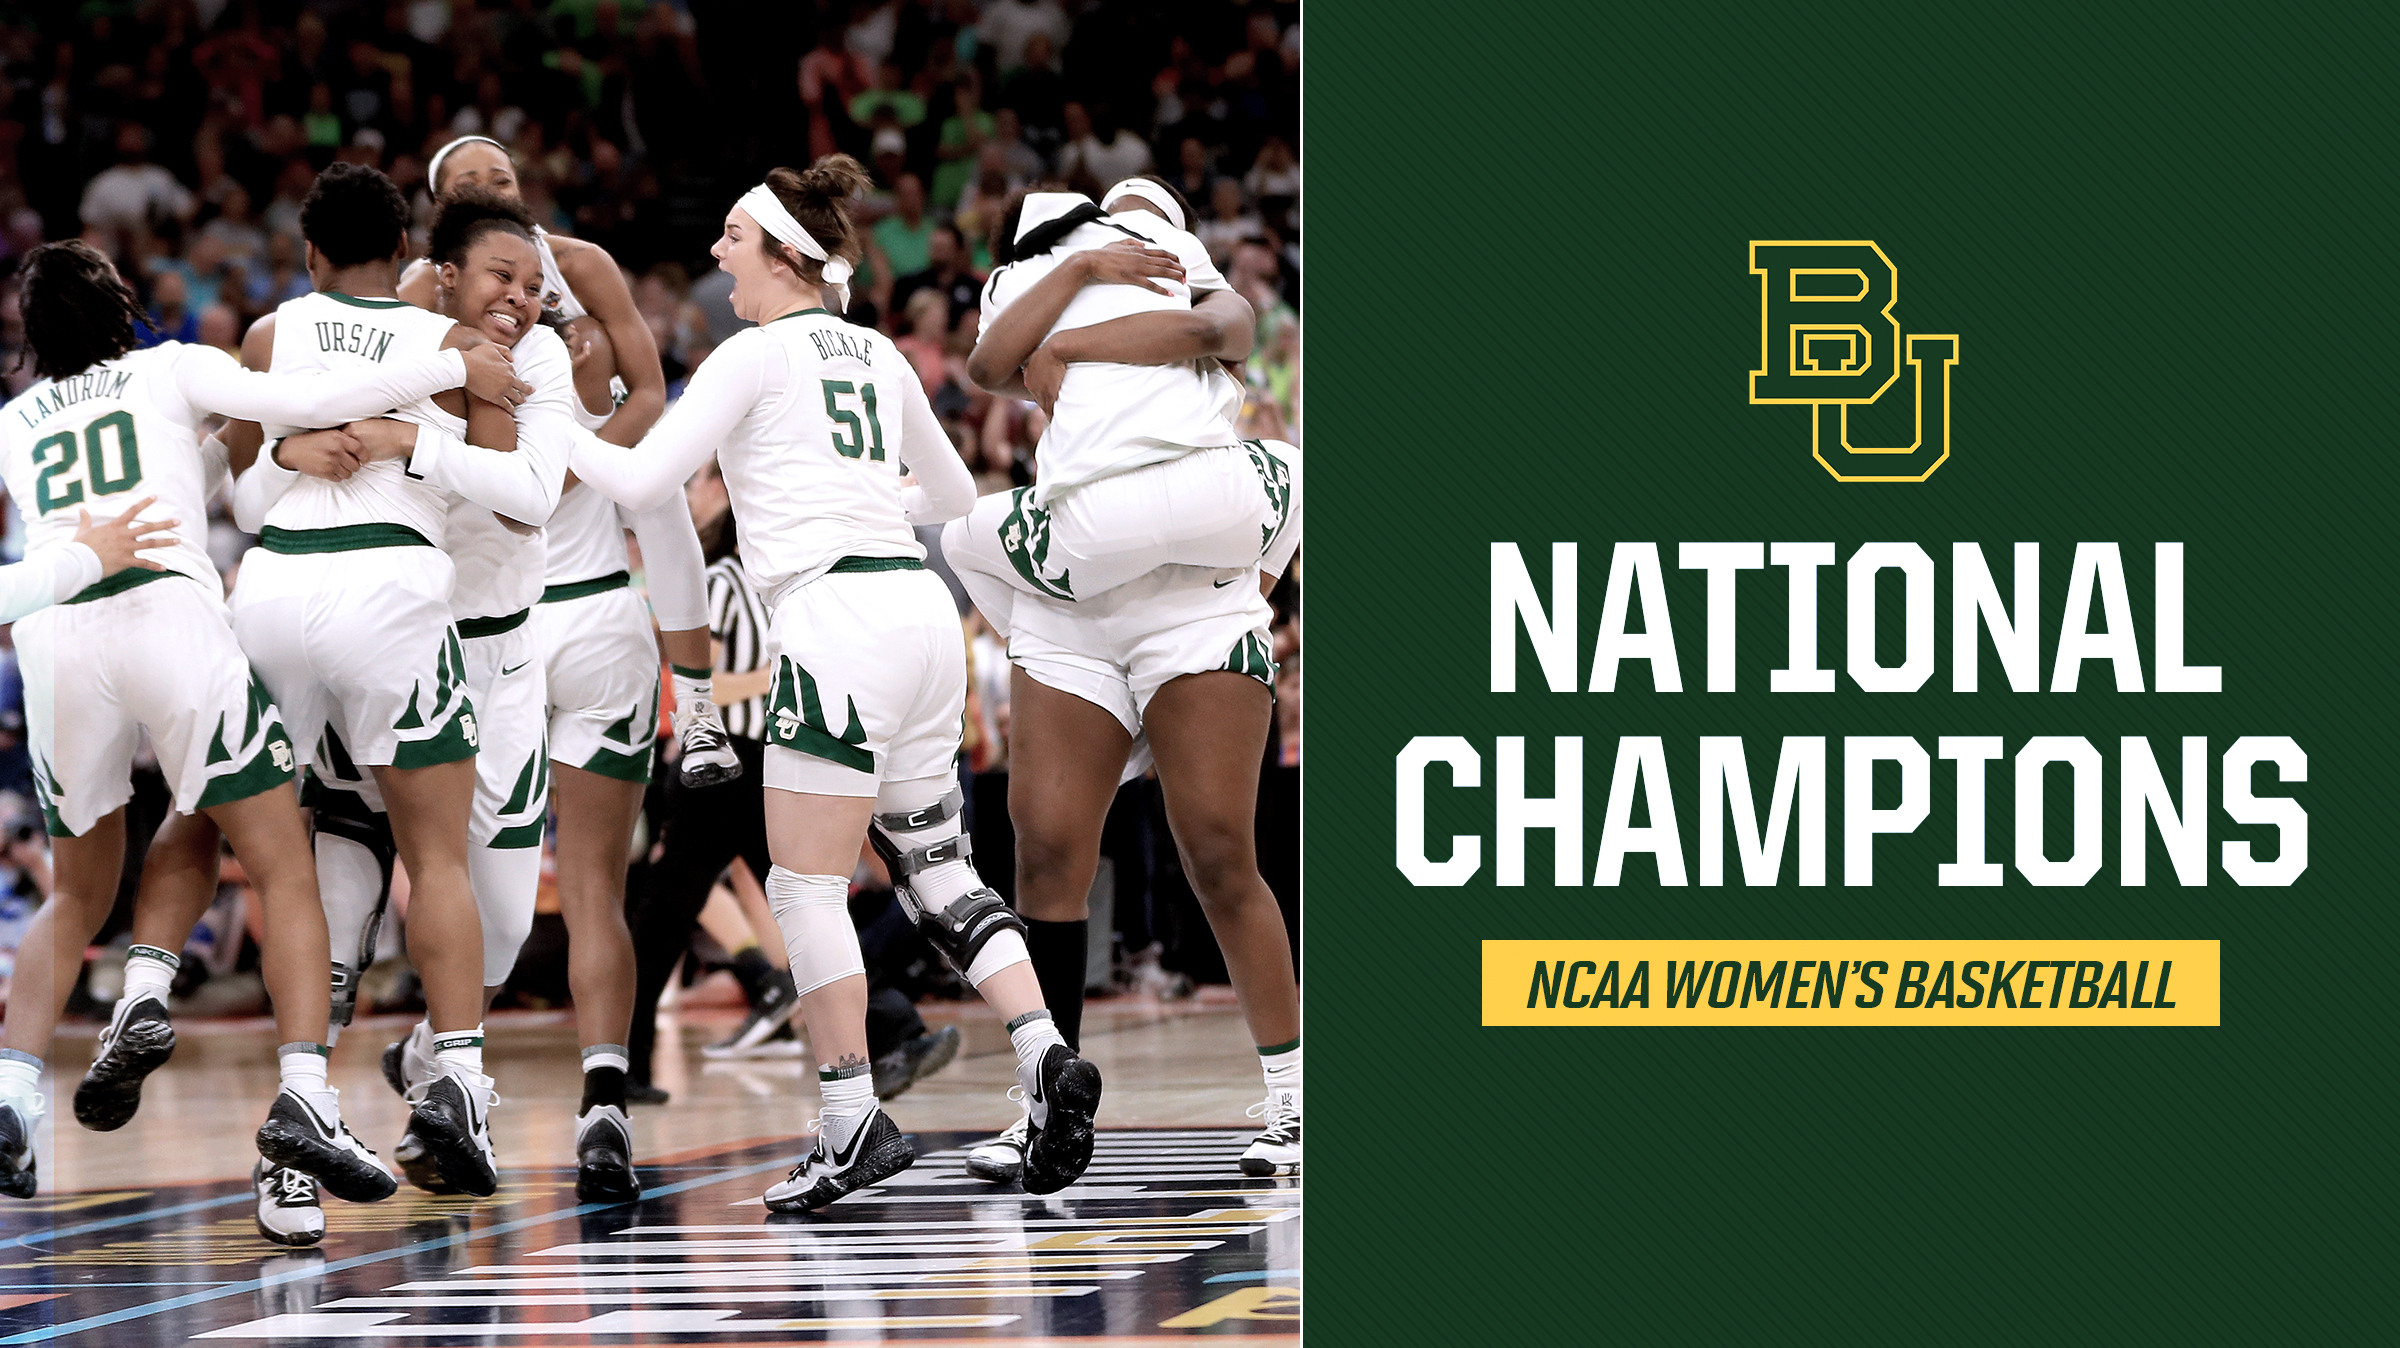 In a season of parity across women's basketball, Baylor was the one consistent force, but its national championship journey was far from simple.